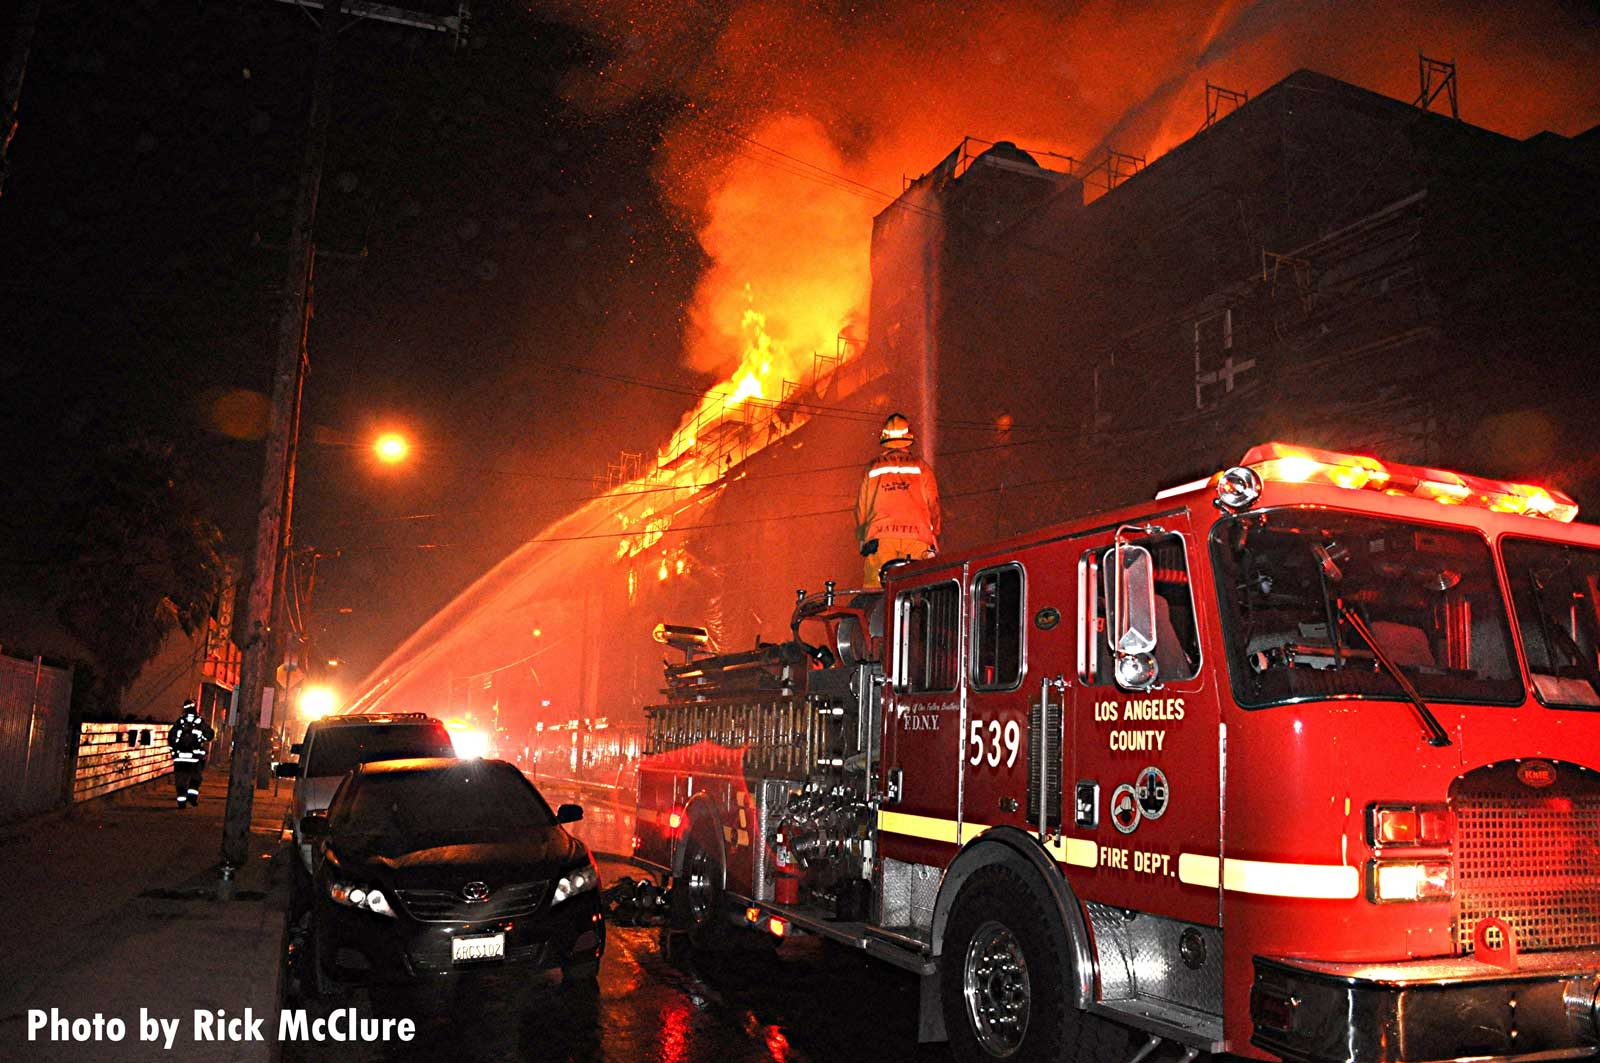 Firefighters working at the huge fire